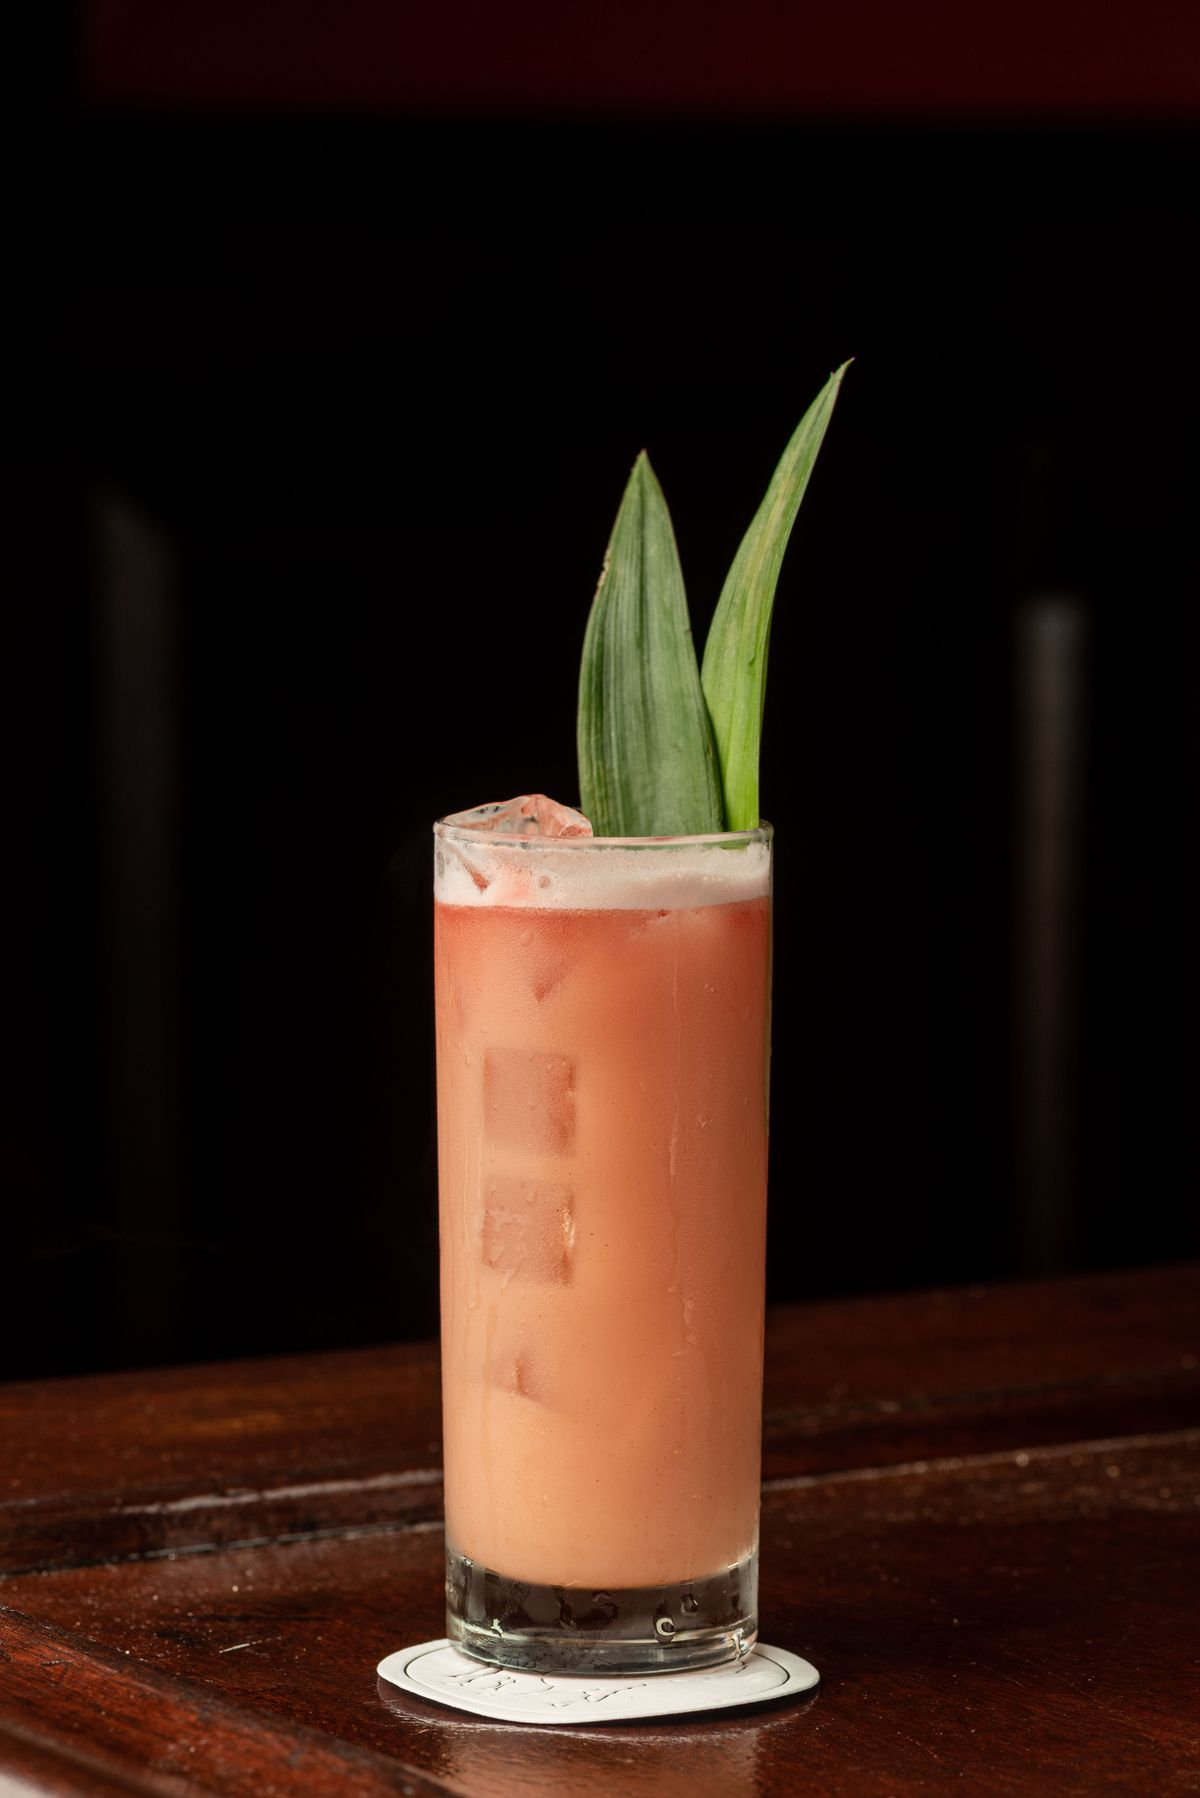 A light pink cocktail with a tall green leaf and slightly foamy top.